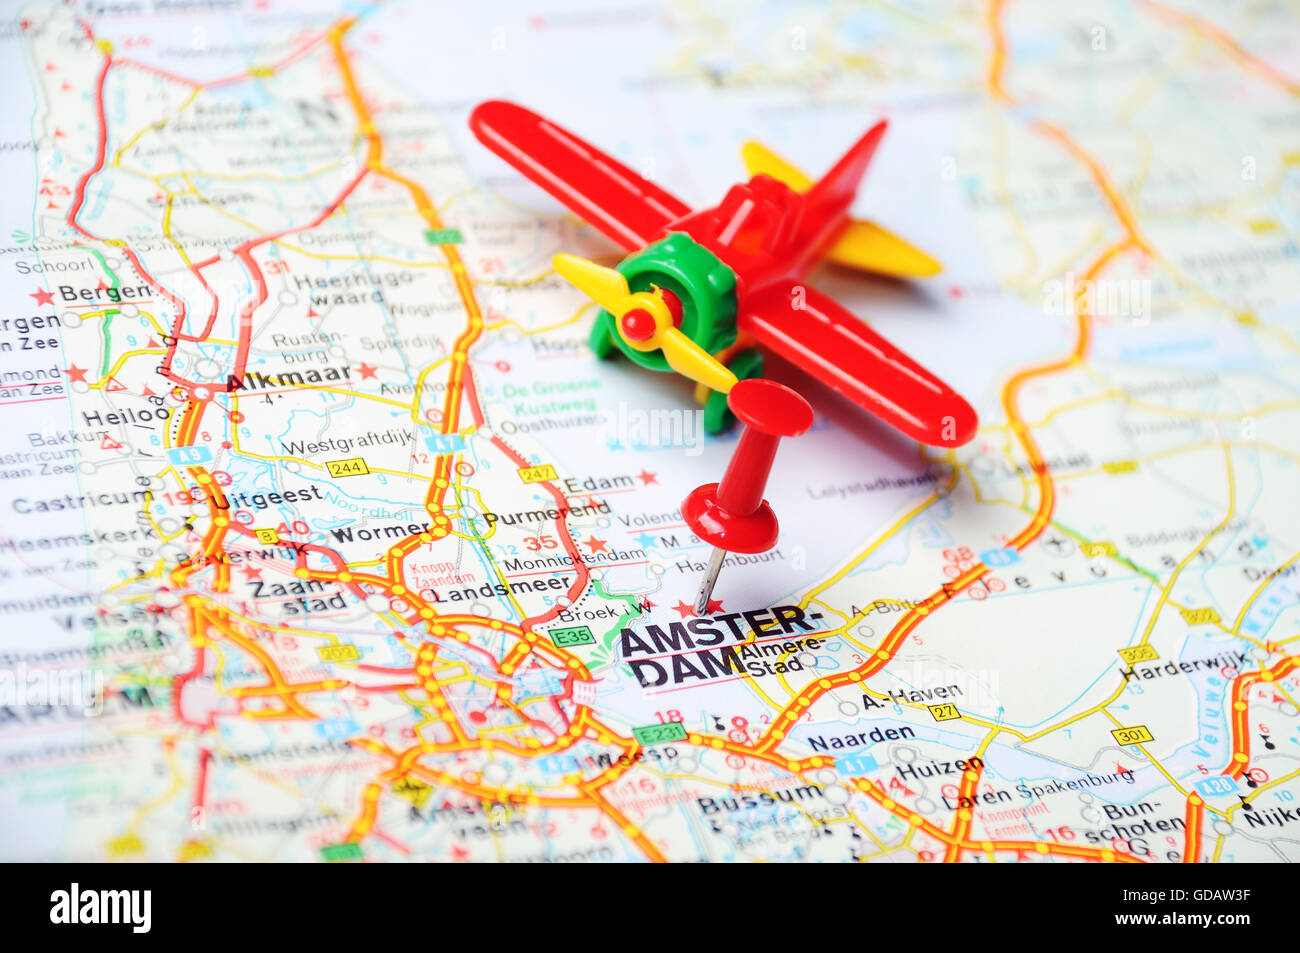 Edam Netherlands Map%0A Close up of Amsterdam   Netherlands map with red pin and airplane  Travel  concept